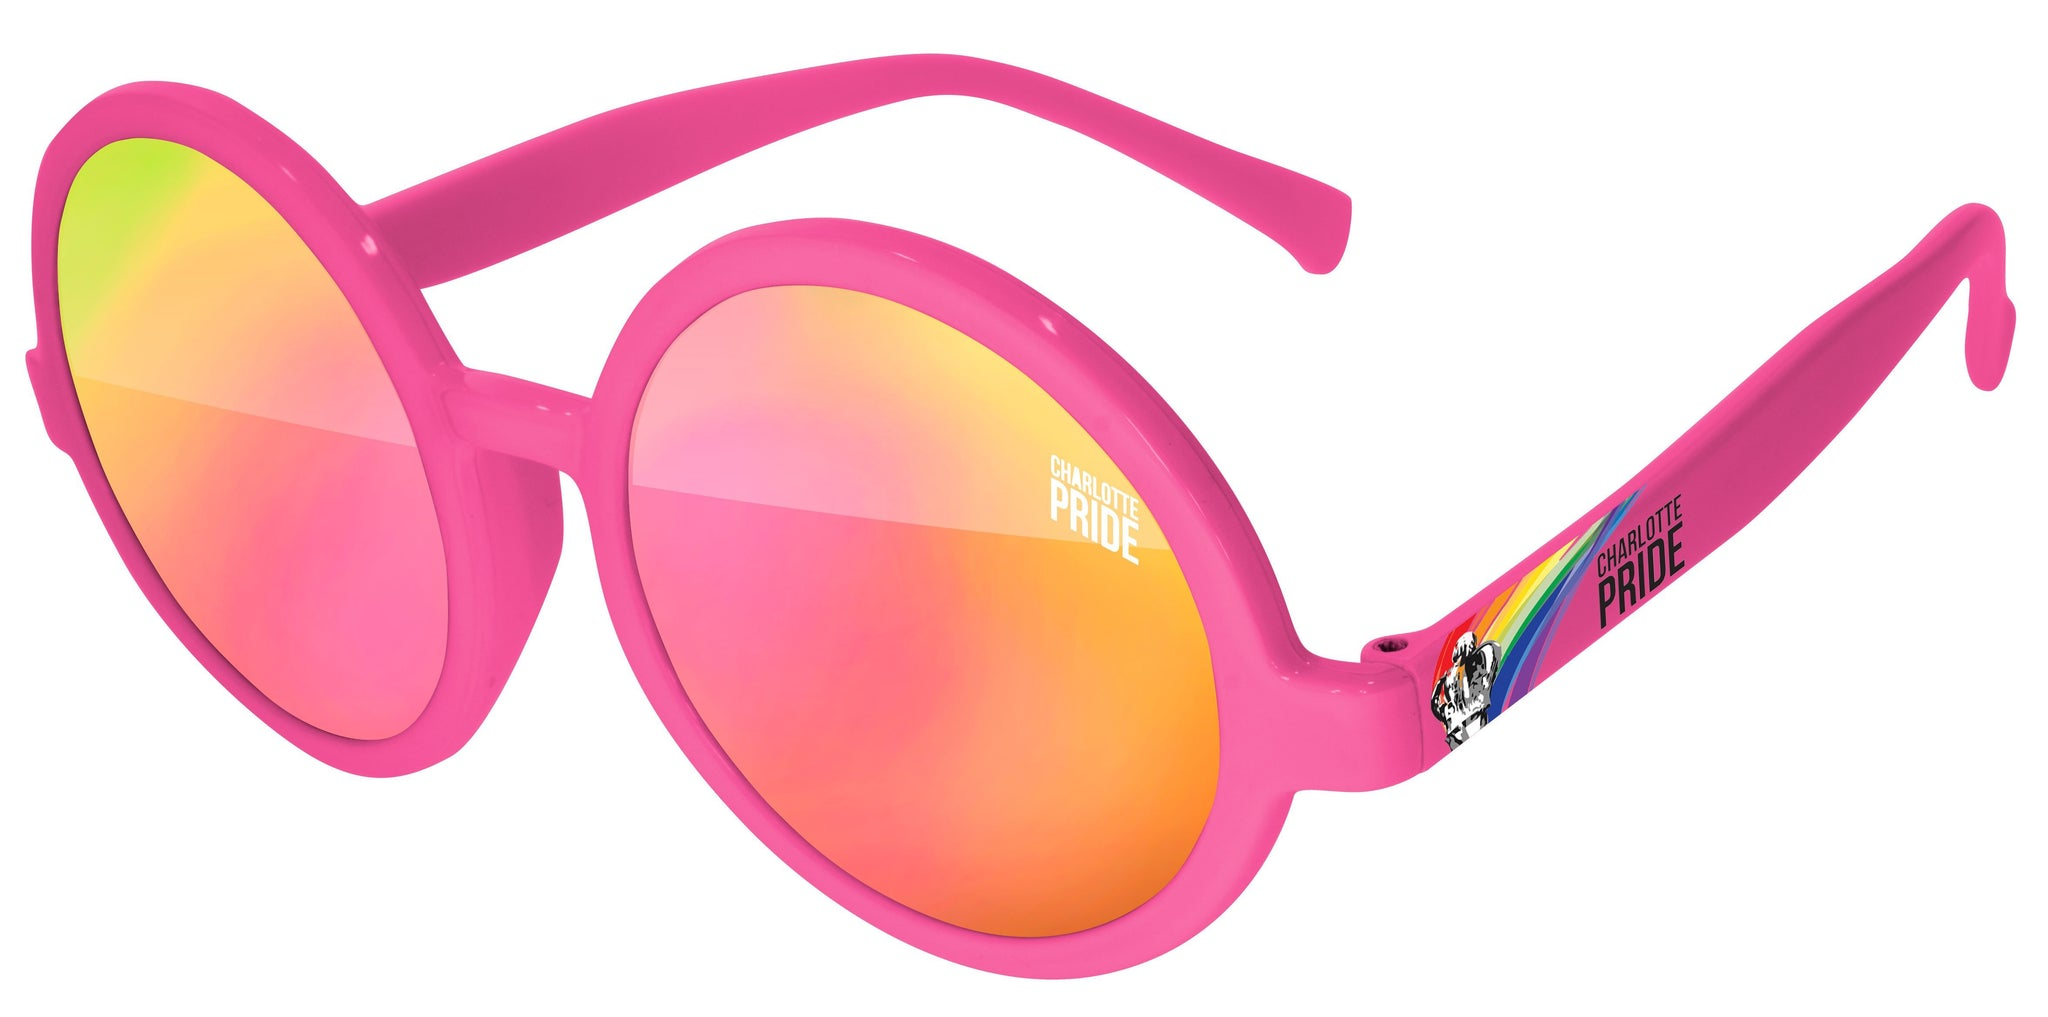 IM520 - Pride Iris Mirror Promotional Sunglasses w/ 1-color lens & temple imprint